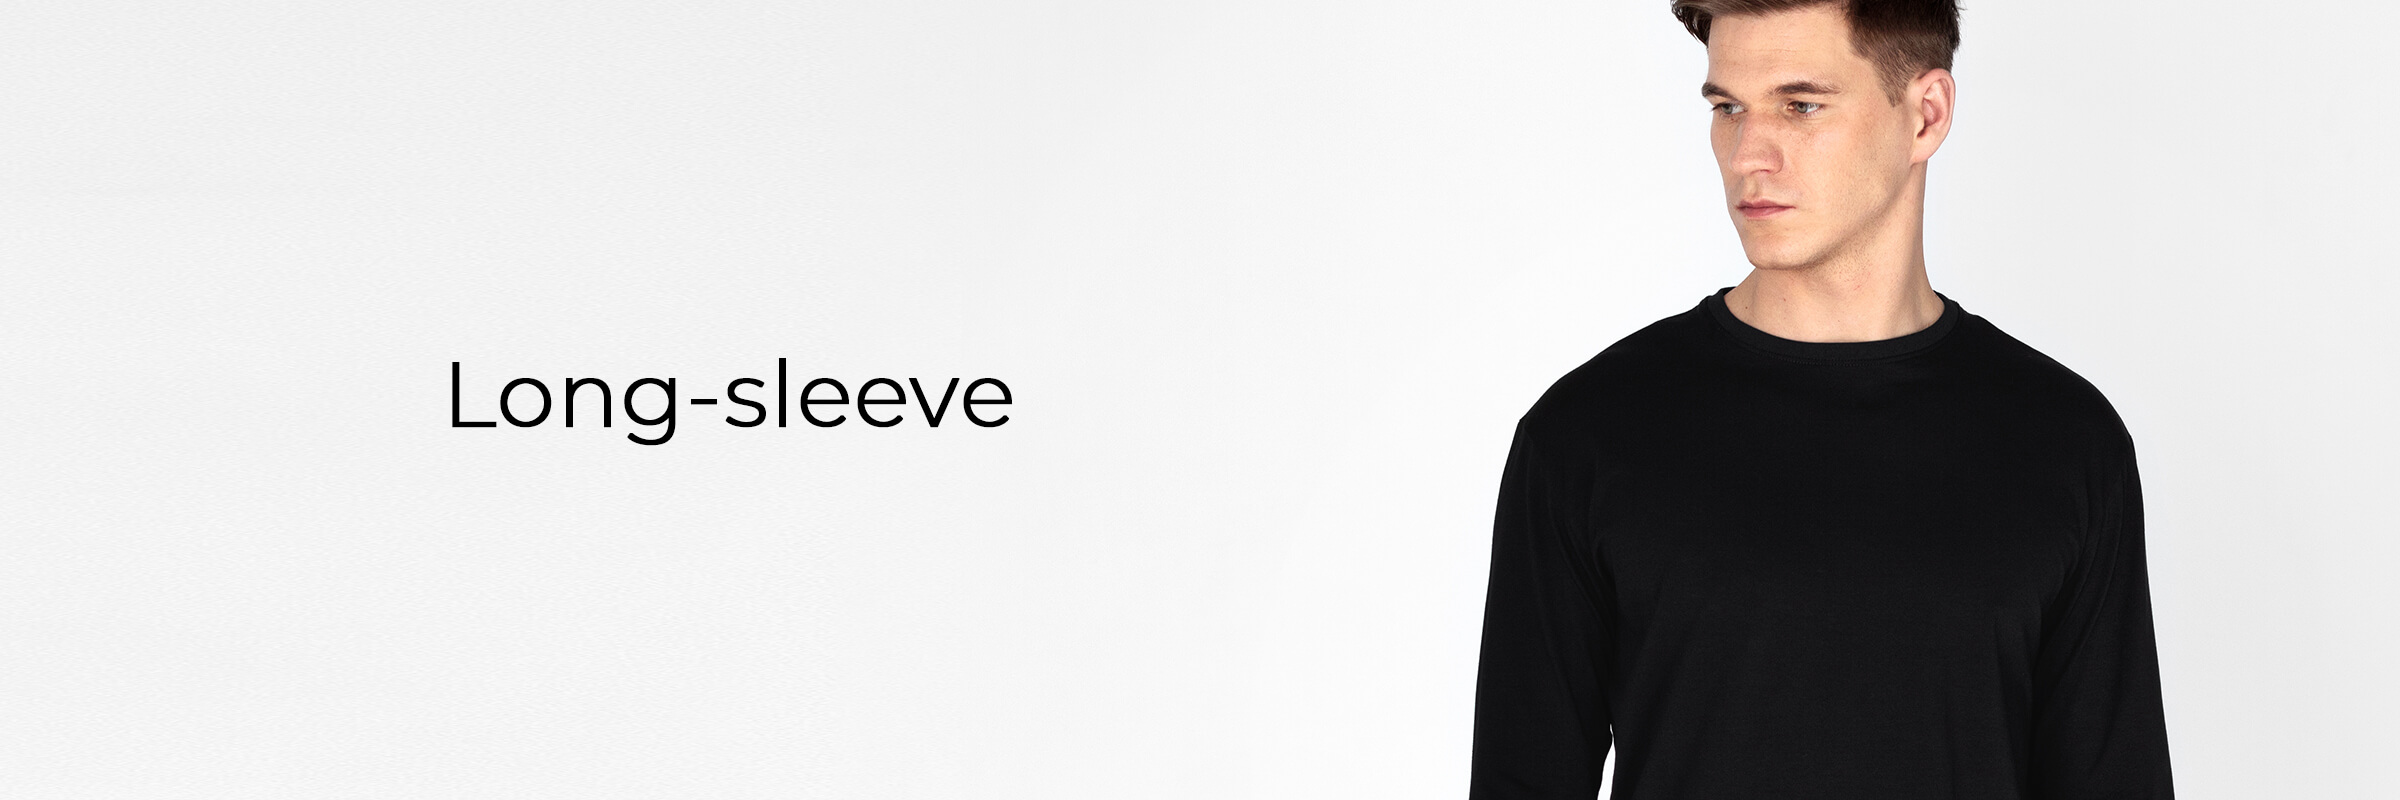 long-sleeve men's collection baner